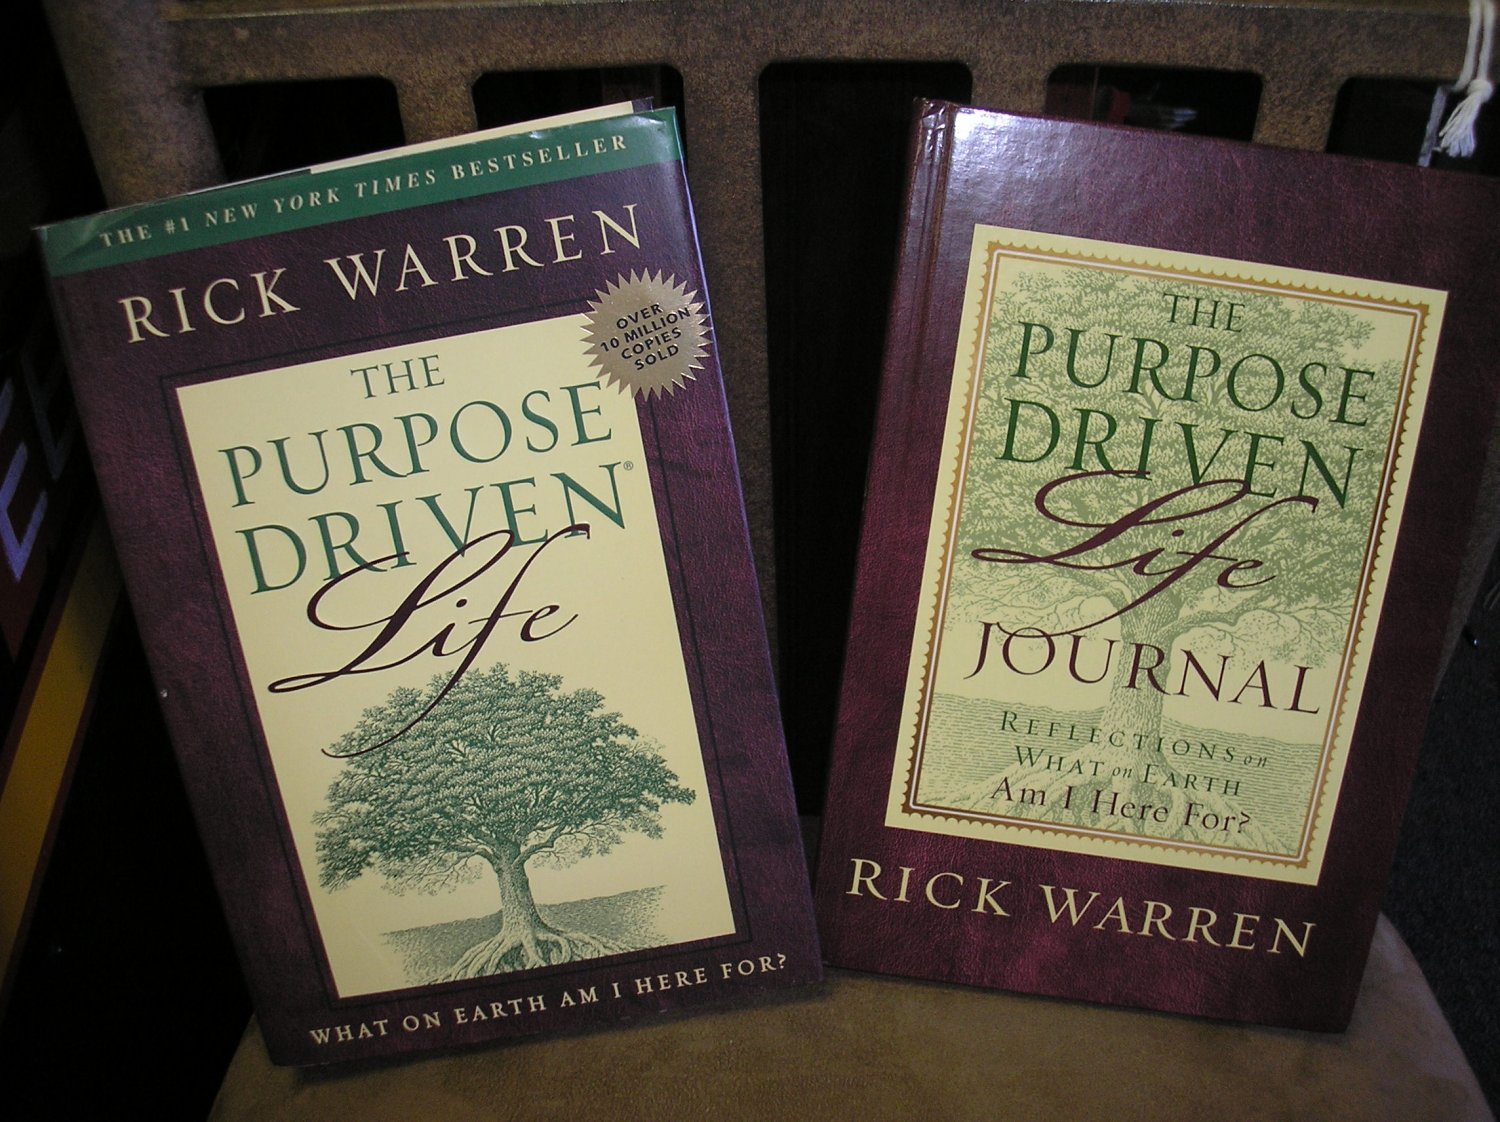 THE PURPOSE DRIVEN LIFE HARDCOVER BOOK & JOURNAL - 2 PIECE SET by RICK WARREN - BRAND NEW!